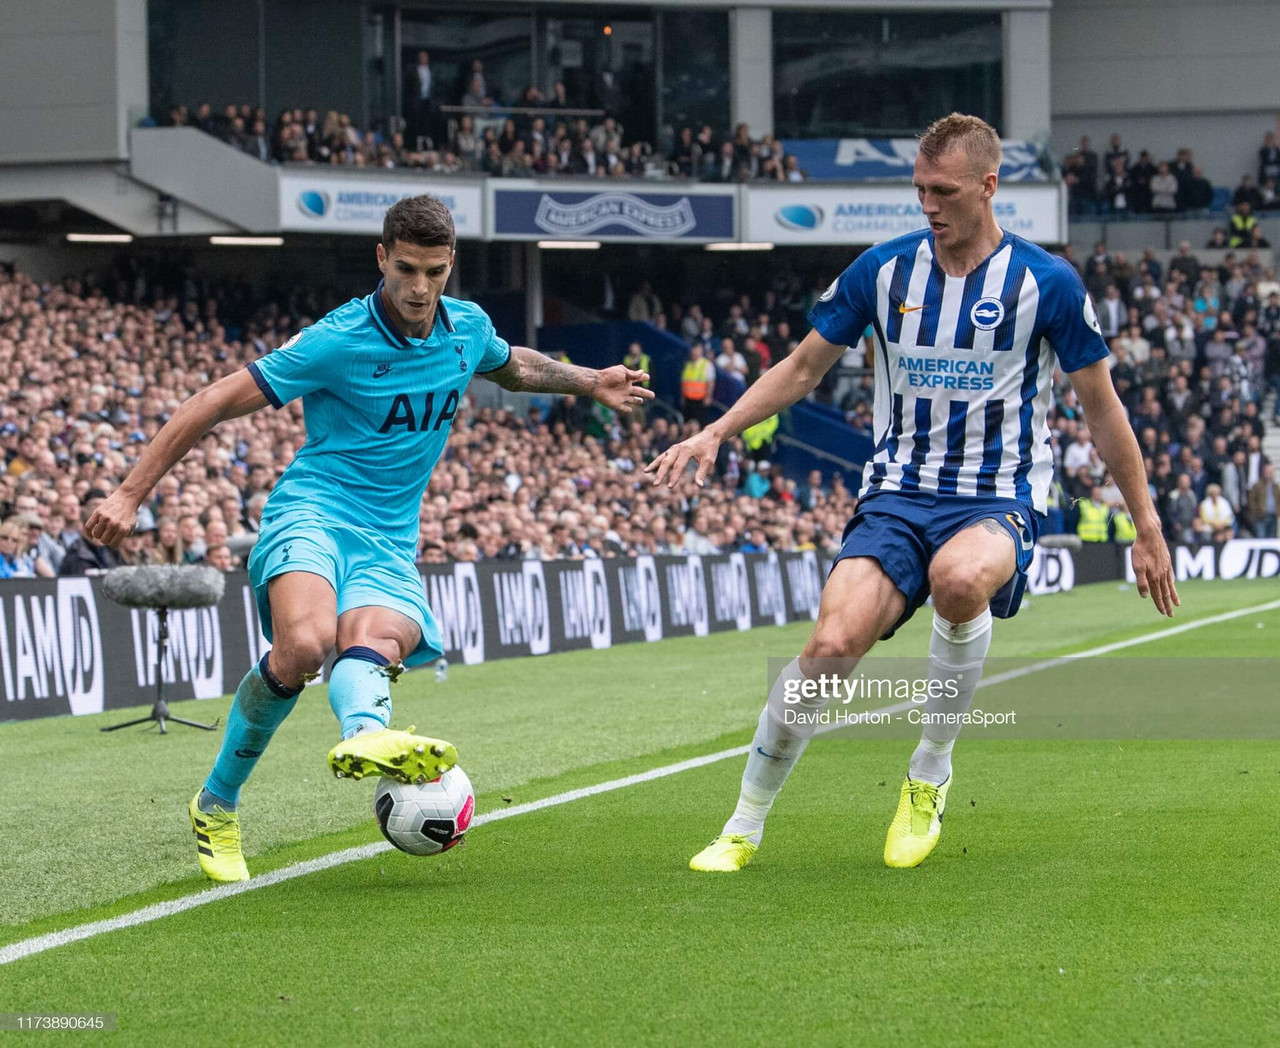 Mourinho rules out using Bale as striker during Kane absence